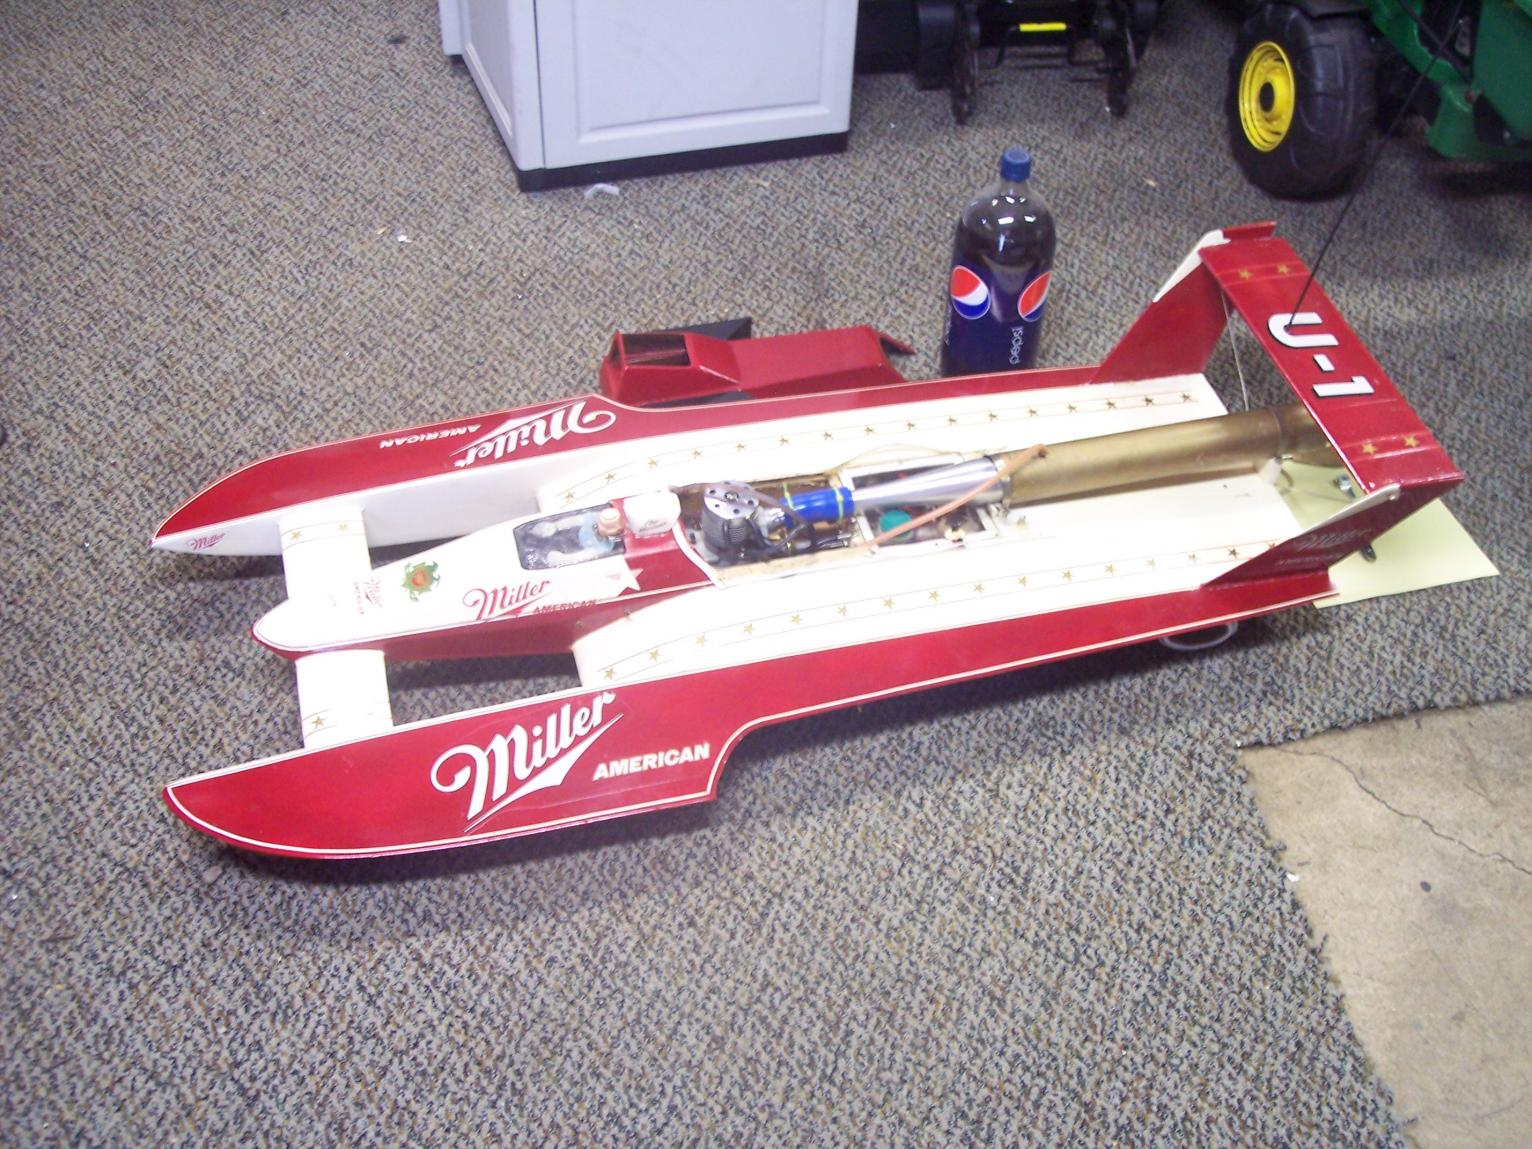 nitro rc car kits with 410174 47 Hydroplane Nitro Boat 67 11cc Motor on Jet Drives besides Watch as well 251411090909 furthermore Event Coverage Mmrctpa Truck Tractor Pull In Sturgeon Mo additionally 107244.